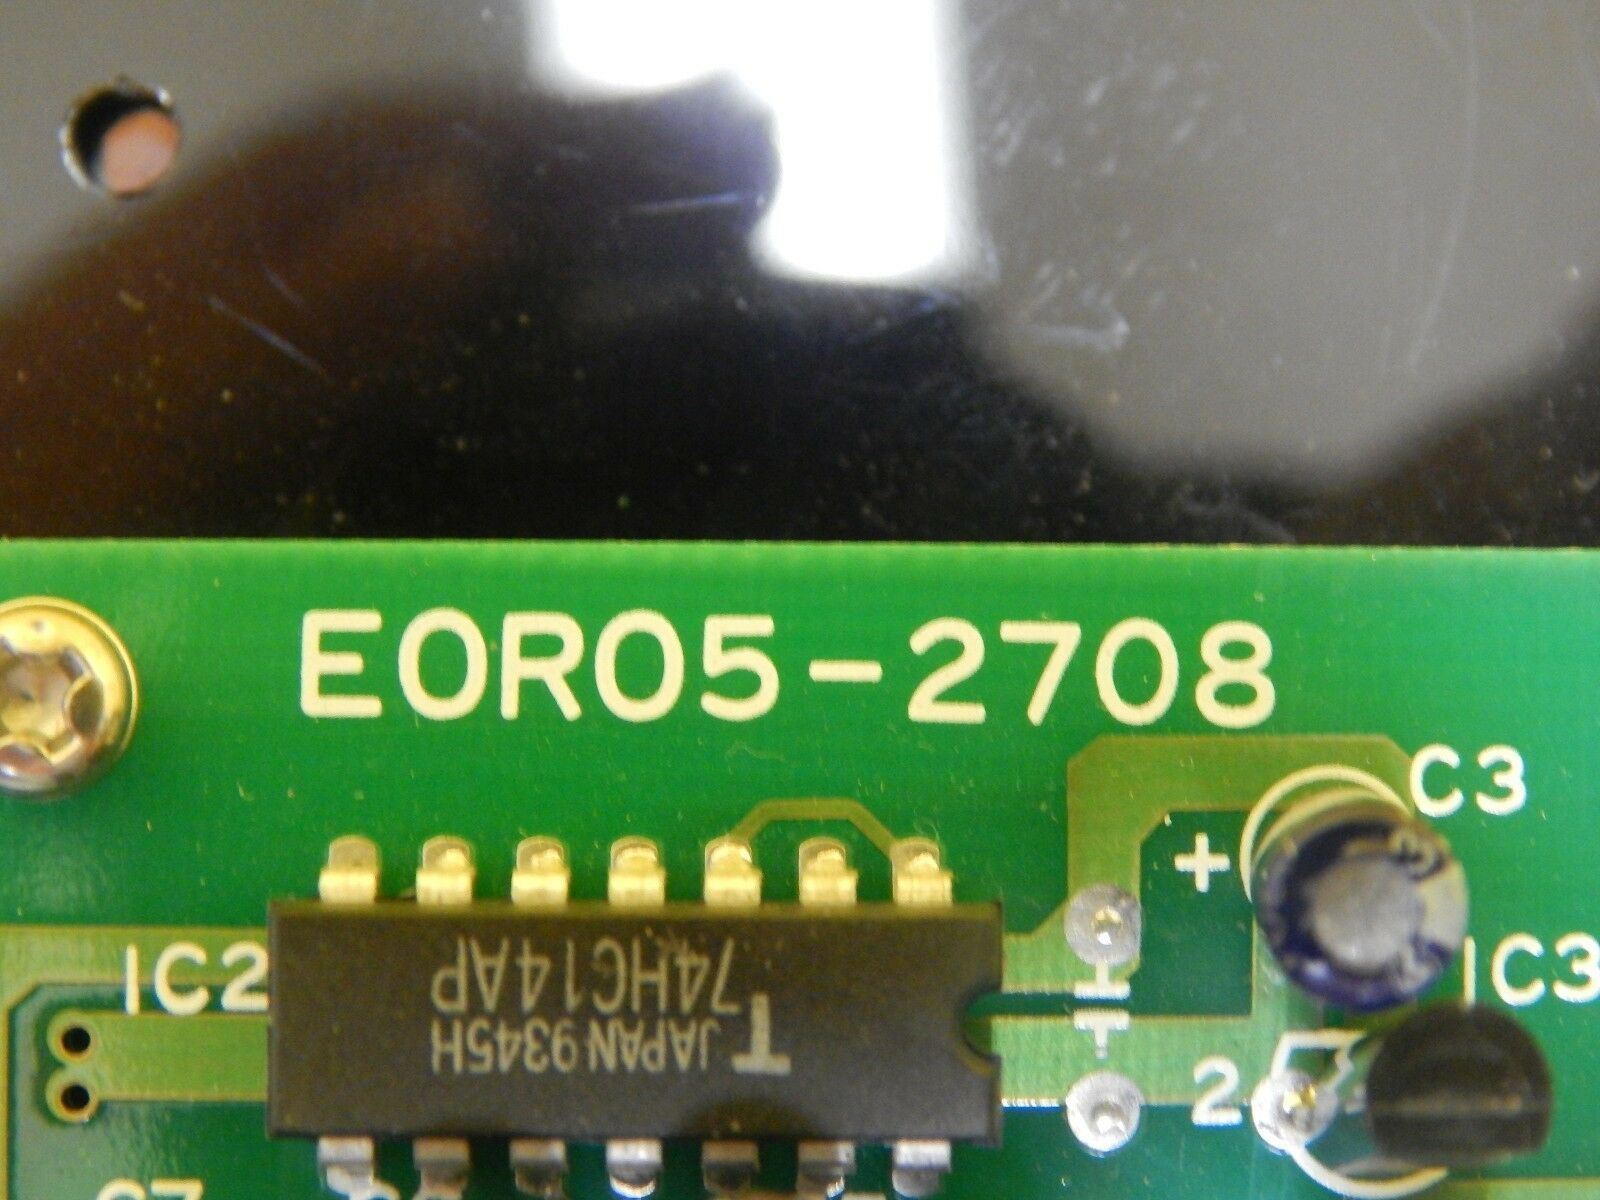 TAZMO E0R05-2708 Driver Receiver PCB Card Semix TR6132U 150mm SOG Used Working